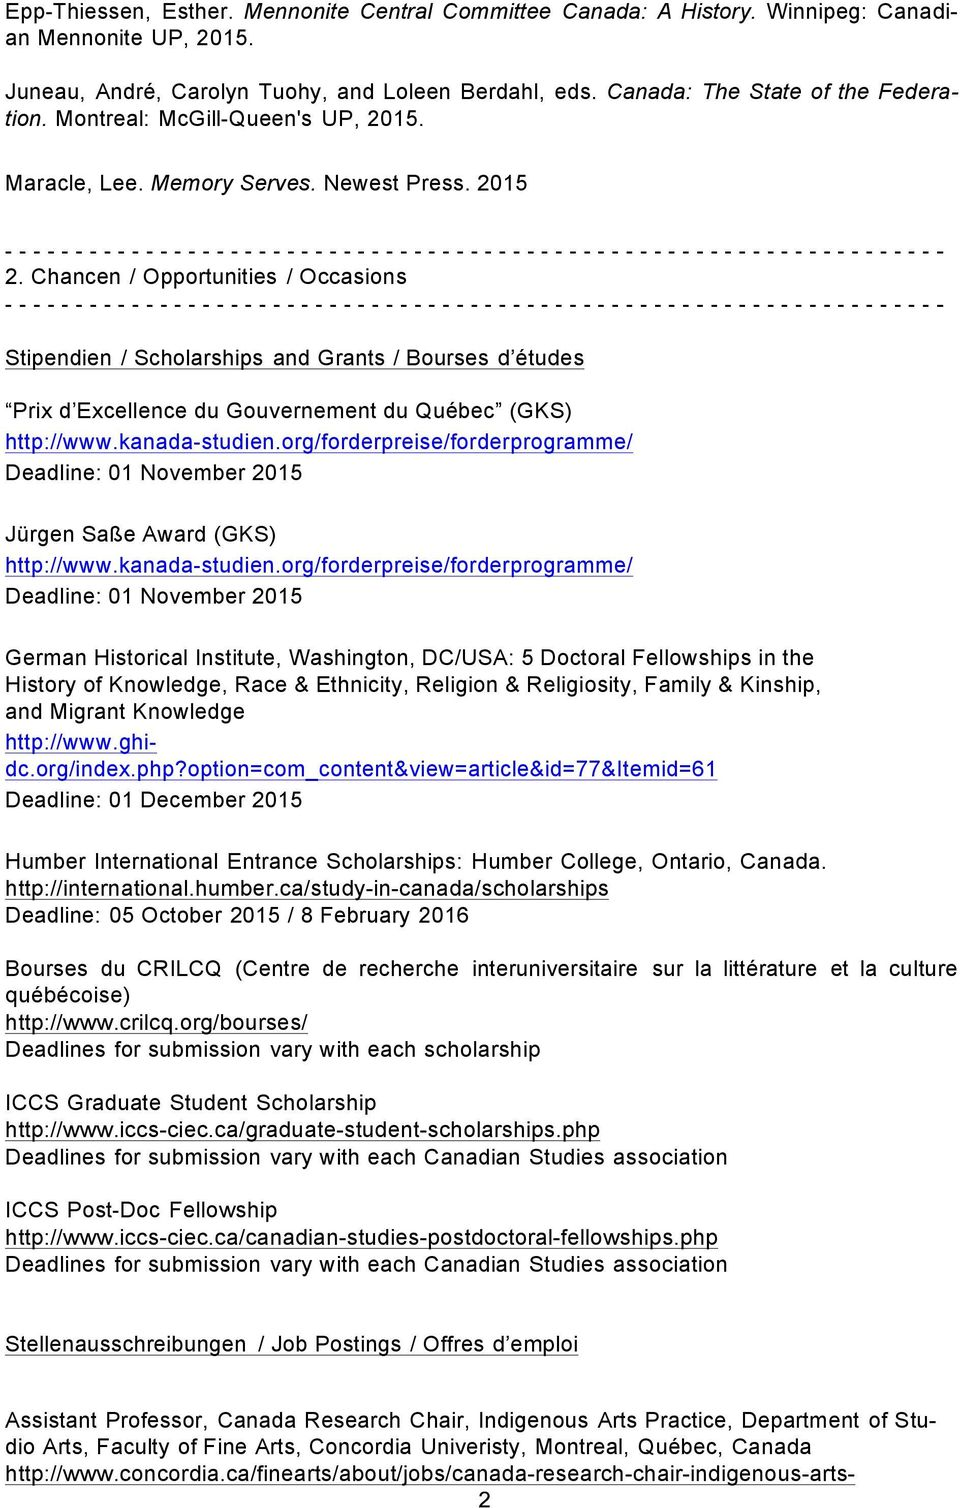 iccs scholarship for a graduate student thesis/dissertation Issc graduate student scholarship and resources in canada in support of a thesis/dissertation at the wwwiccs-ciecca/graduate-student-scholarshipsphp.